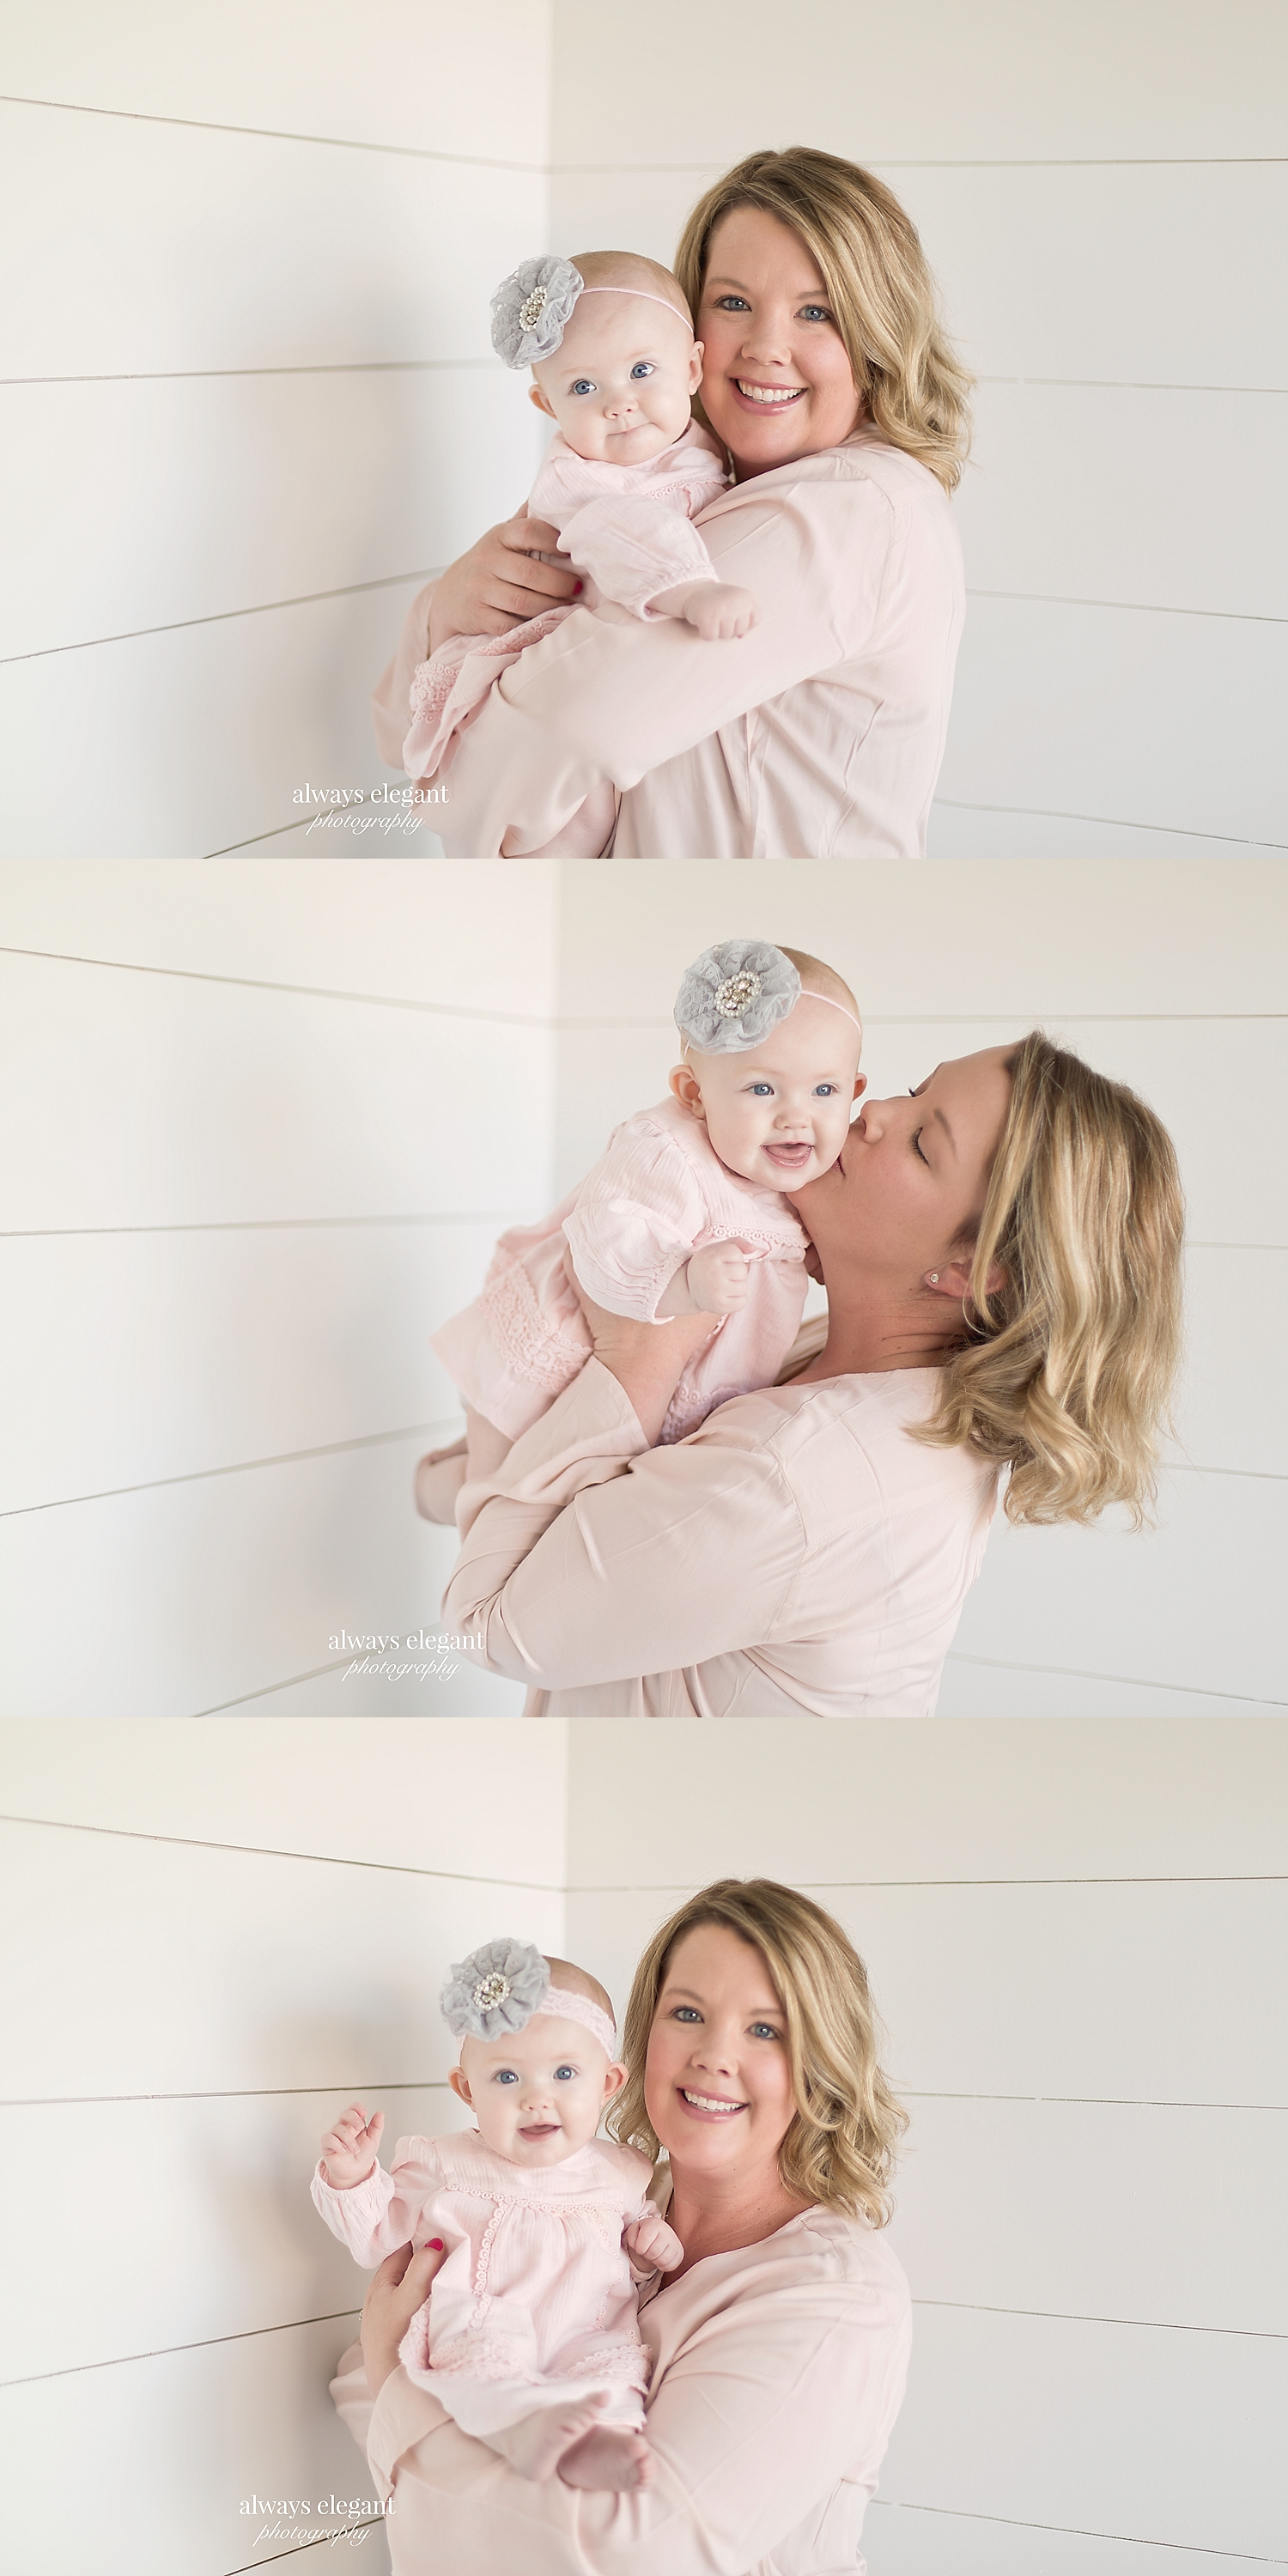 A_Motherhood_Event_Mommy_And_Me_Mini_Session_0002.jpg